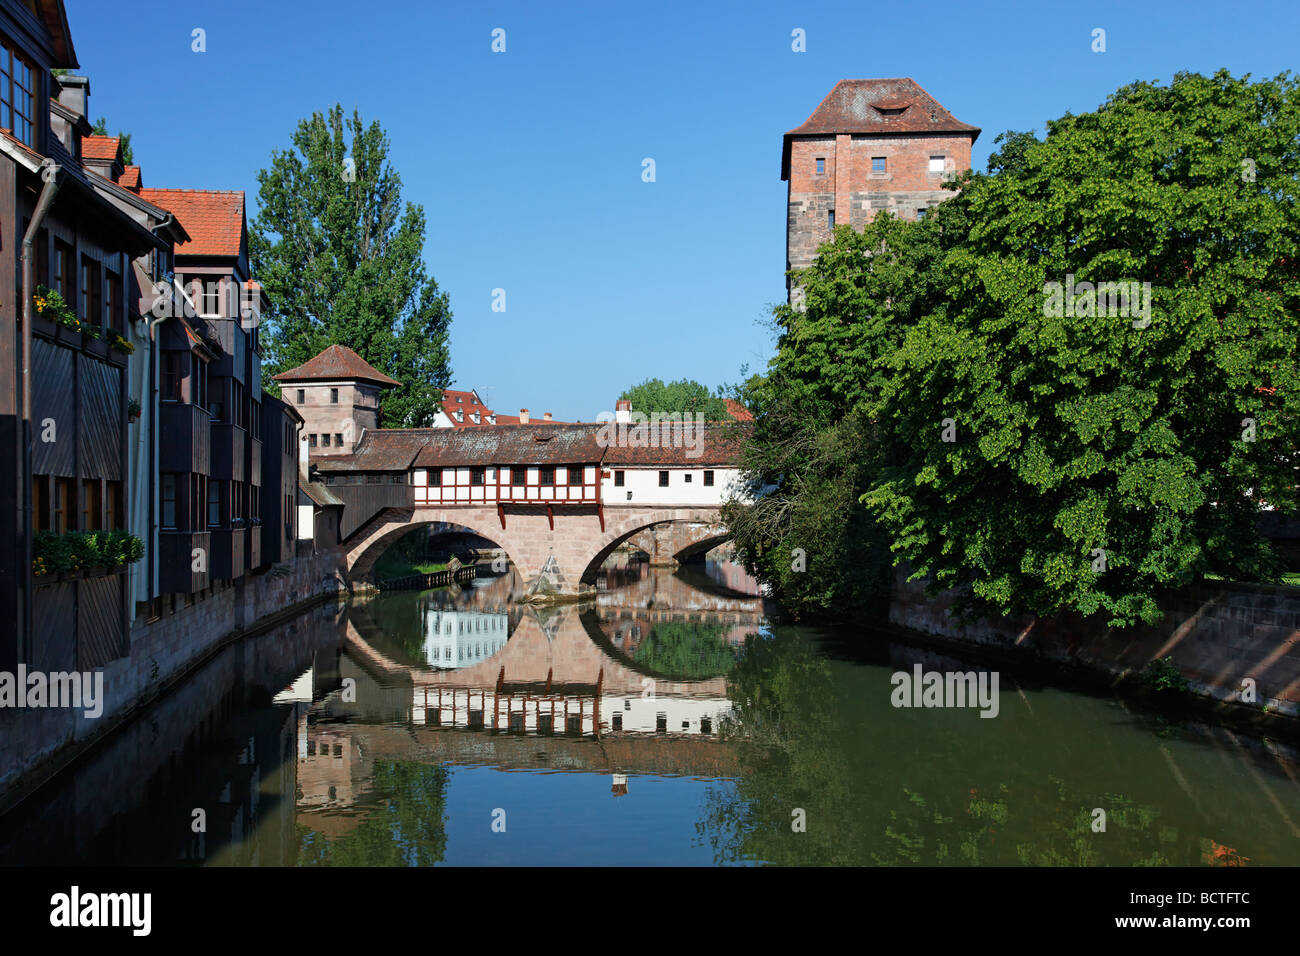 Executioner's home with half-timbered building, bridge building with two arches, small fortified tower and high - Stock Image